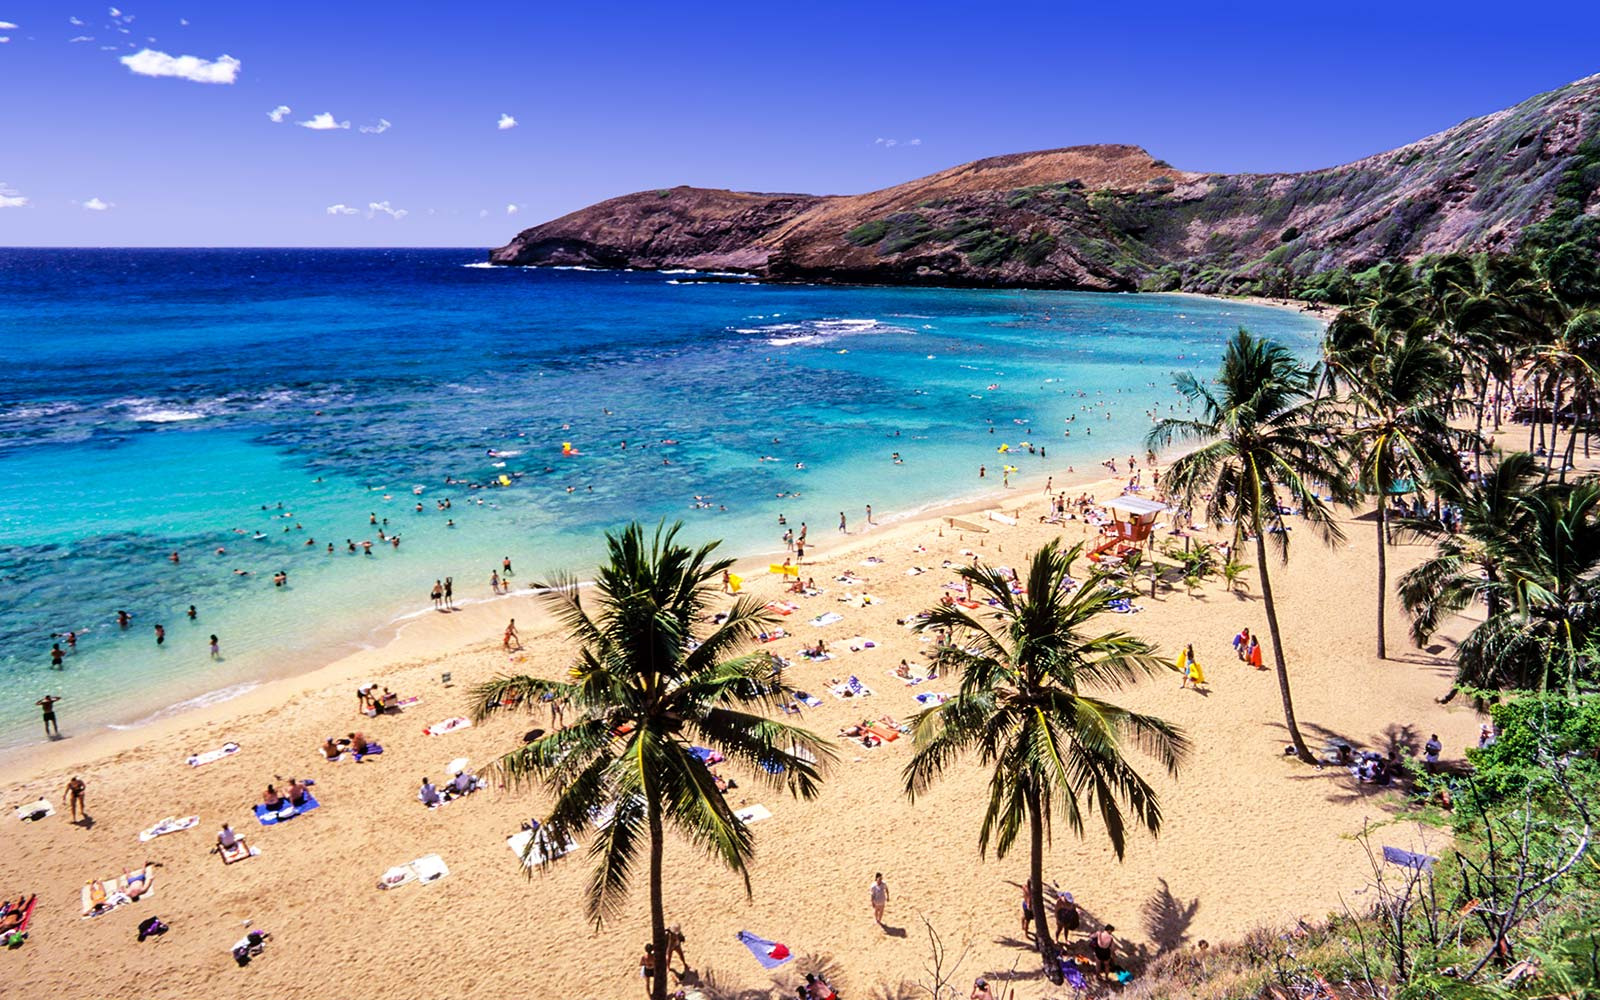 USA, Hawaii, Oahu, Hanauma Bay Nature Preserve, a Nature Preserve and a Marine Life Conservation District inside a volcanic crater snorkel tropical fish